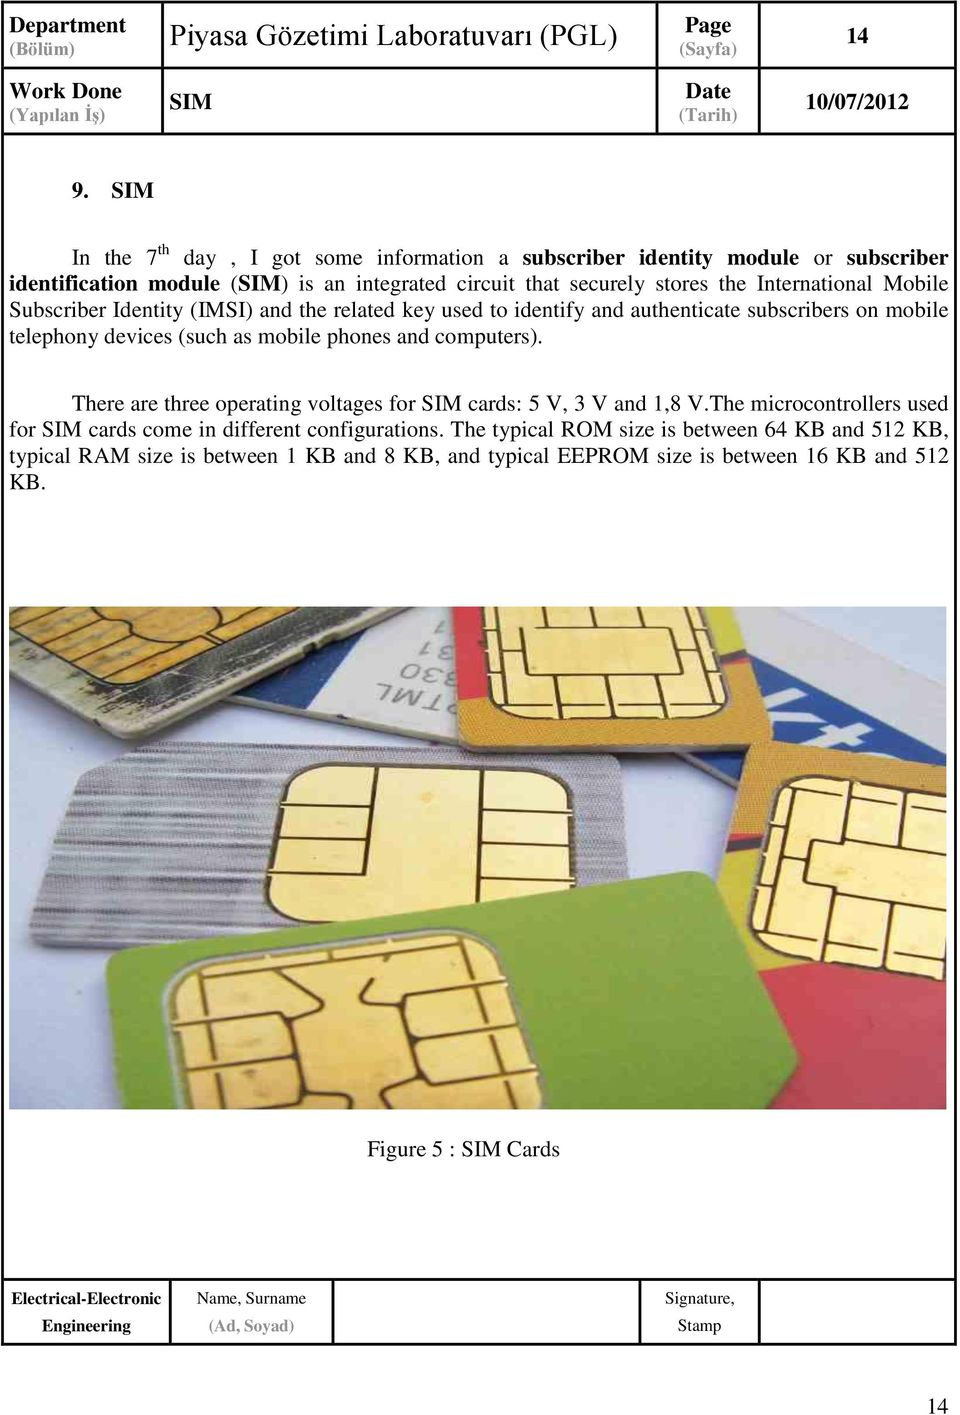 International Mobile Subscriber Identity (IMSI) and the related key used to identify and authenticate subscribers on mobile telephony devices (such as mobile phones and